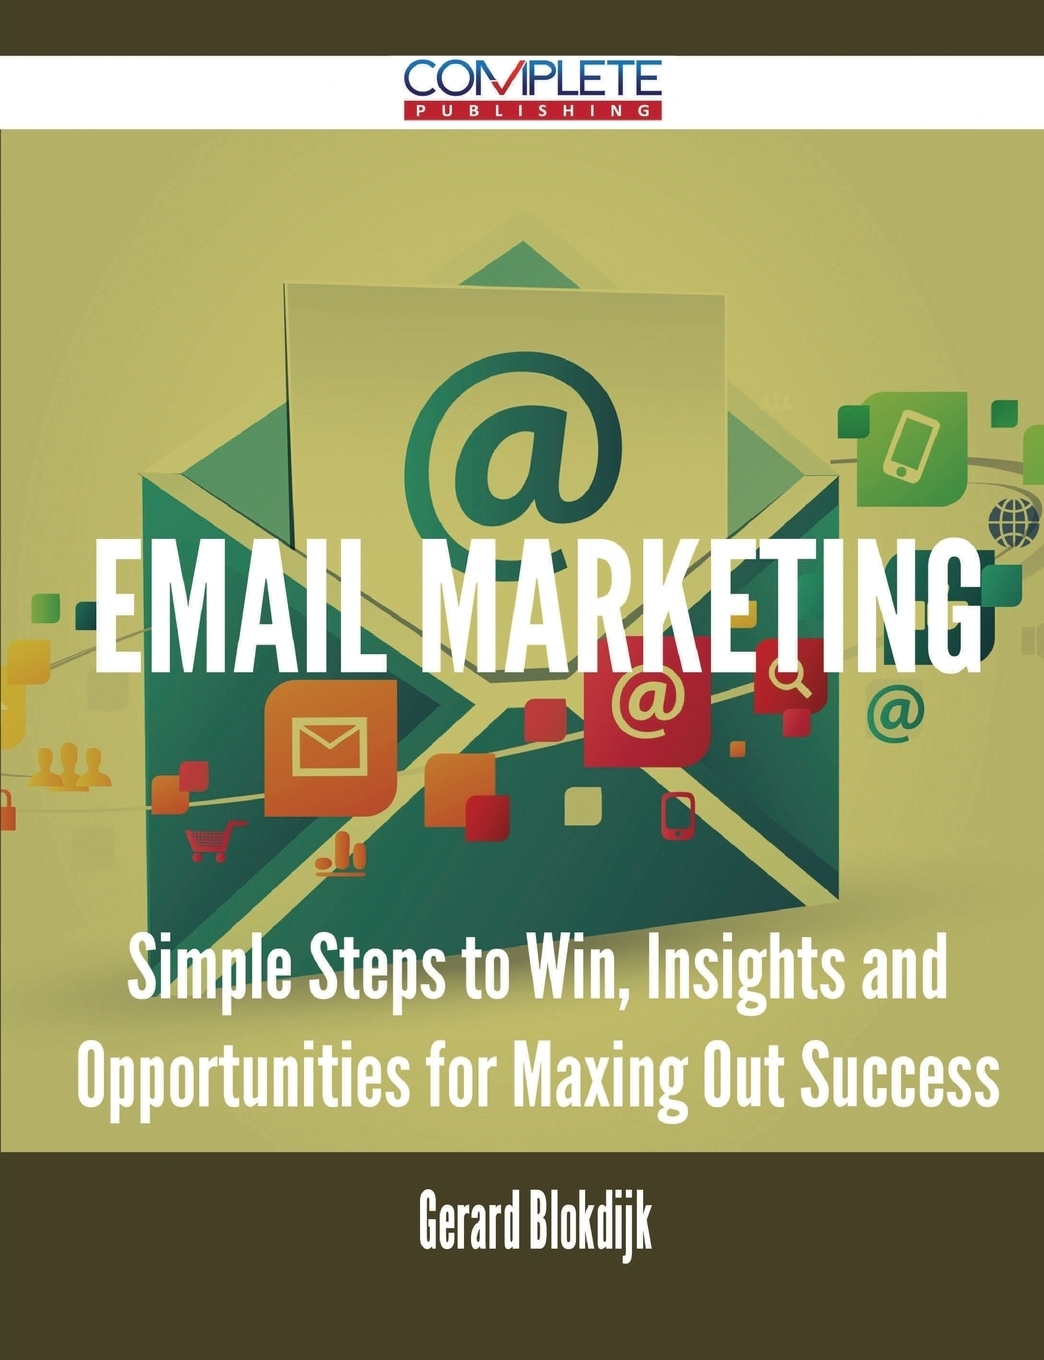 Email Marketing - Simple Steps to Win, Insights and Opportunities for Maxing Out Success. Gerard Blokdijk